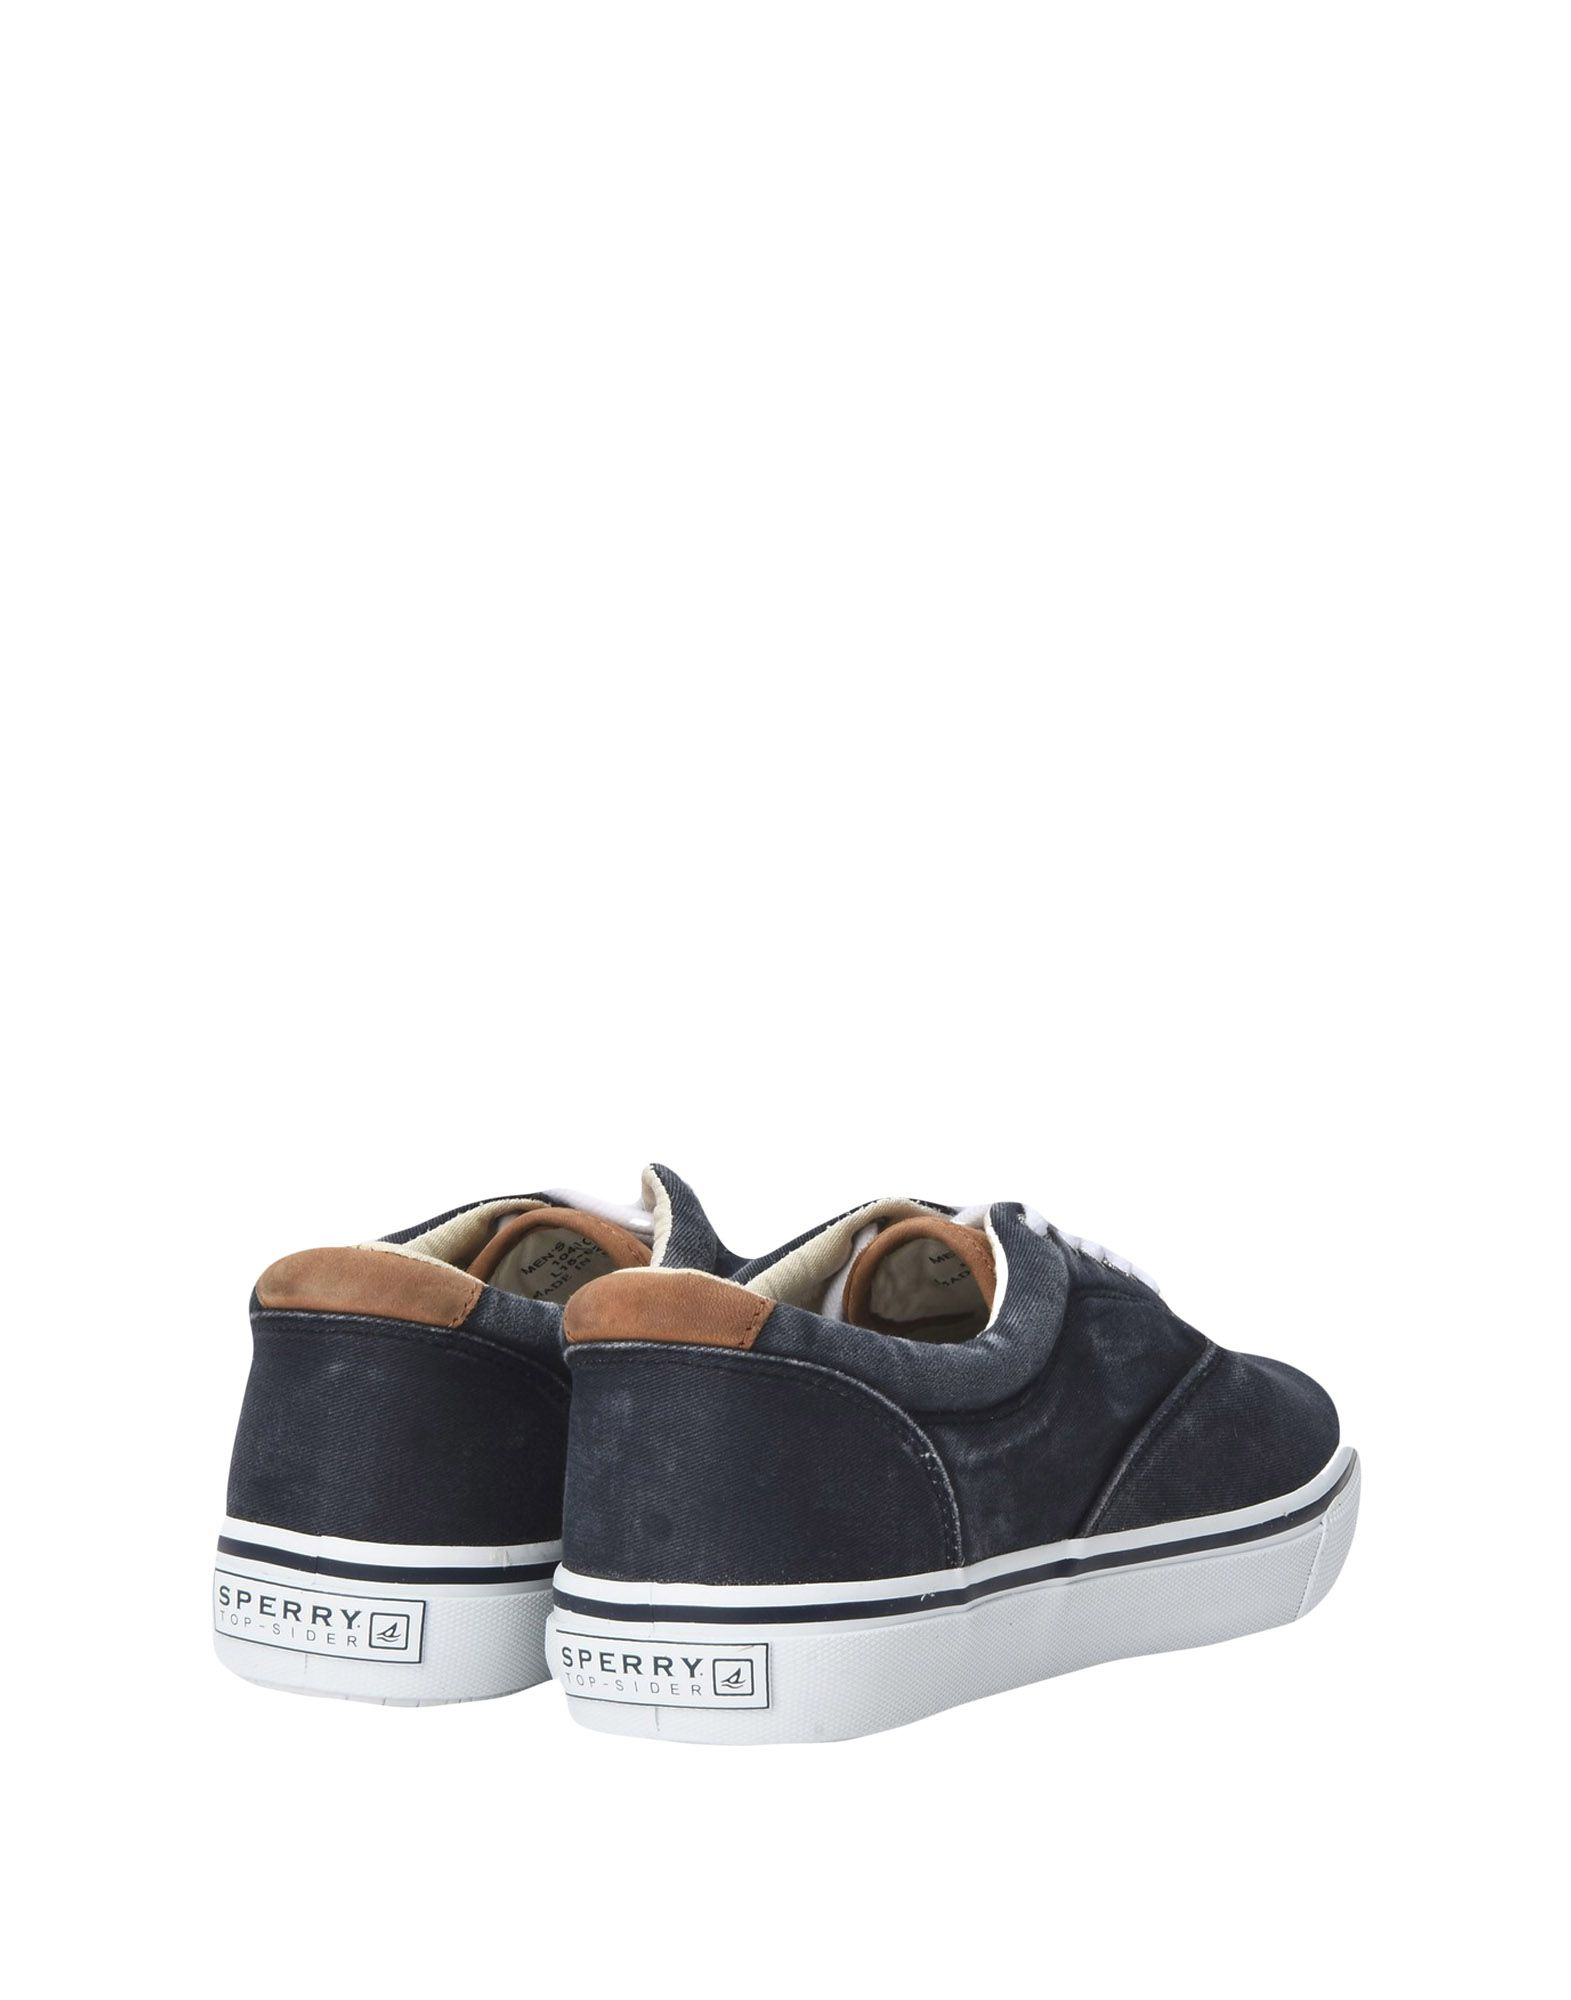 Sneakers Sperry Top-Sider Striper Ll Cvo - Homme - Sneakers Sperry Top-Sider sur